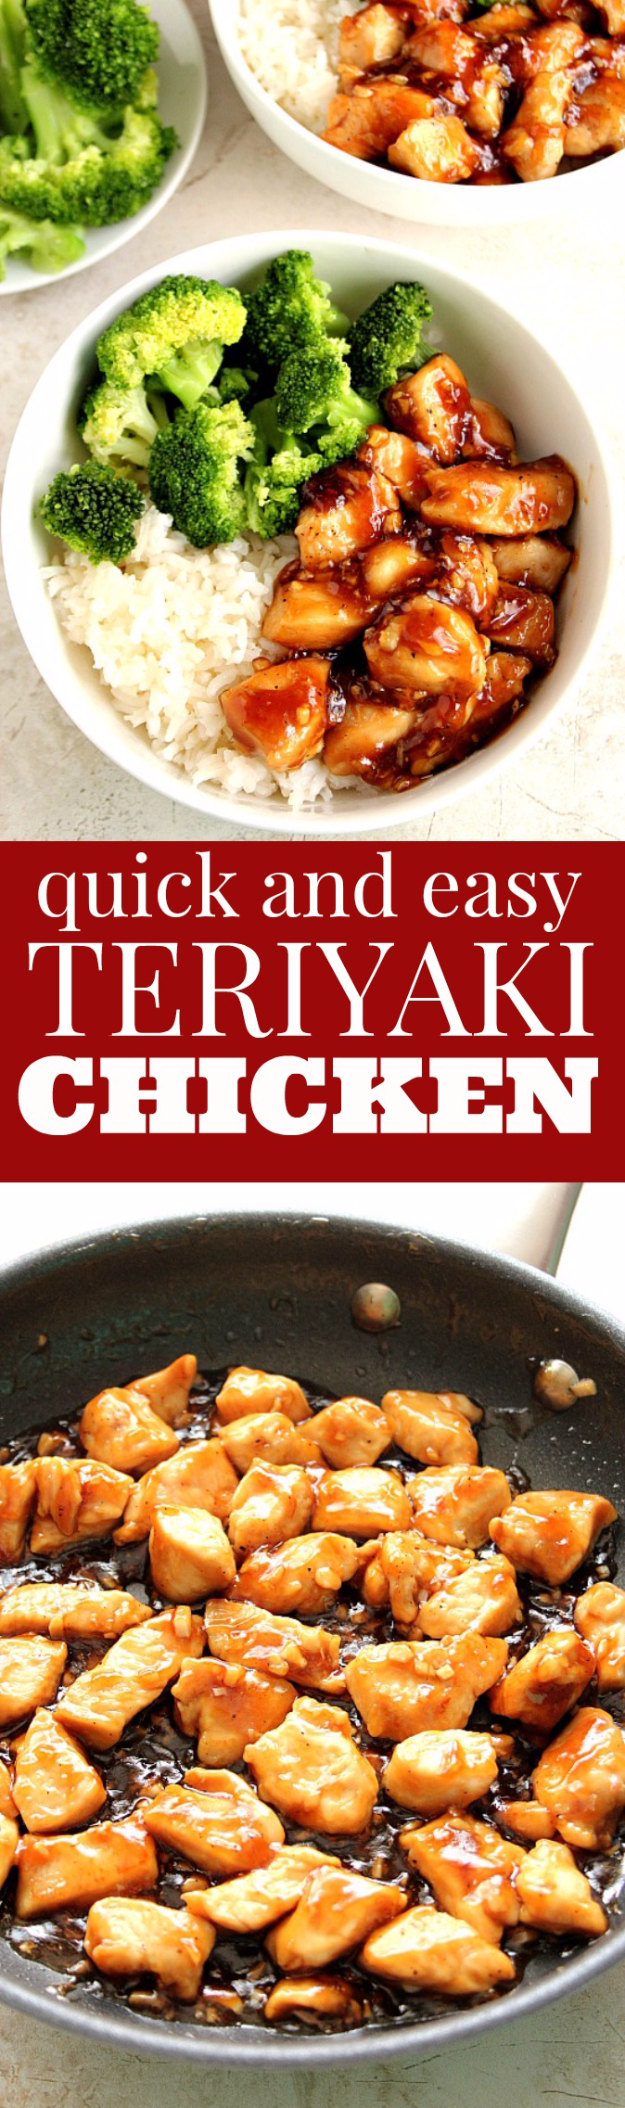 Quick and Healthy Dinner Recipes - Quick Teriyaki Chicken Rice Bowls - Easy and Fast Recipe Ideas for Dinners at Home - Chicken, Beef, Ground Meat, Pasta and Vegetarian Options - Cheap Dinner Ideas for Family, for Two , for Last Minute Cooking #recipes #healthyrecipes